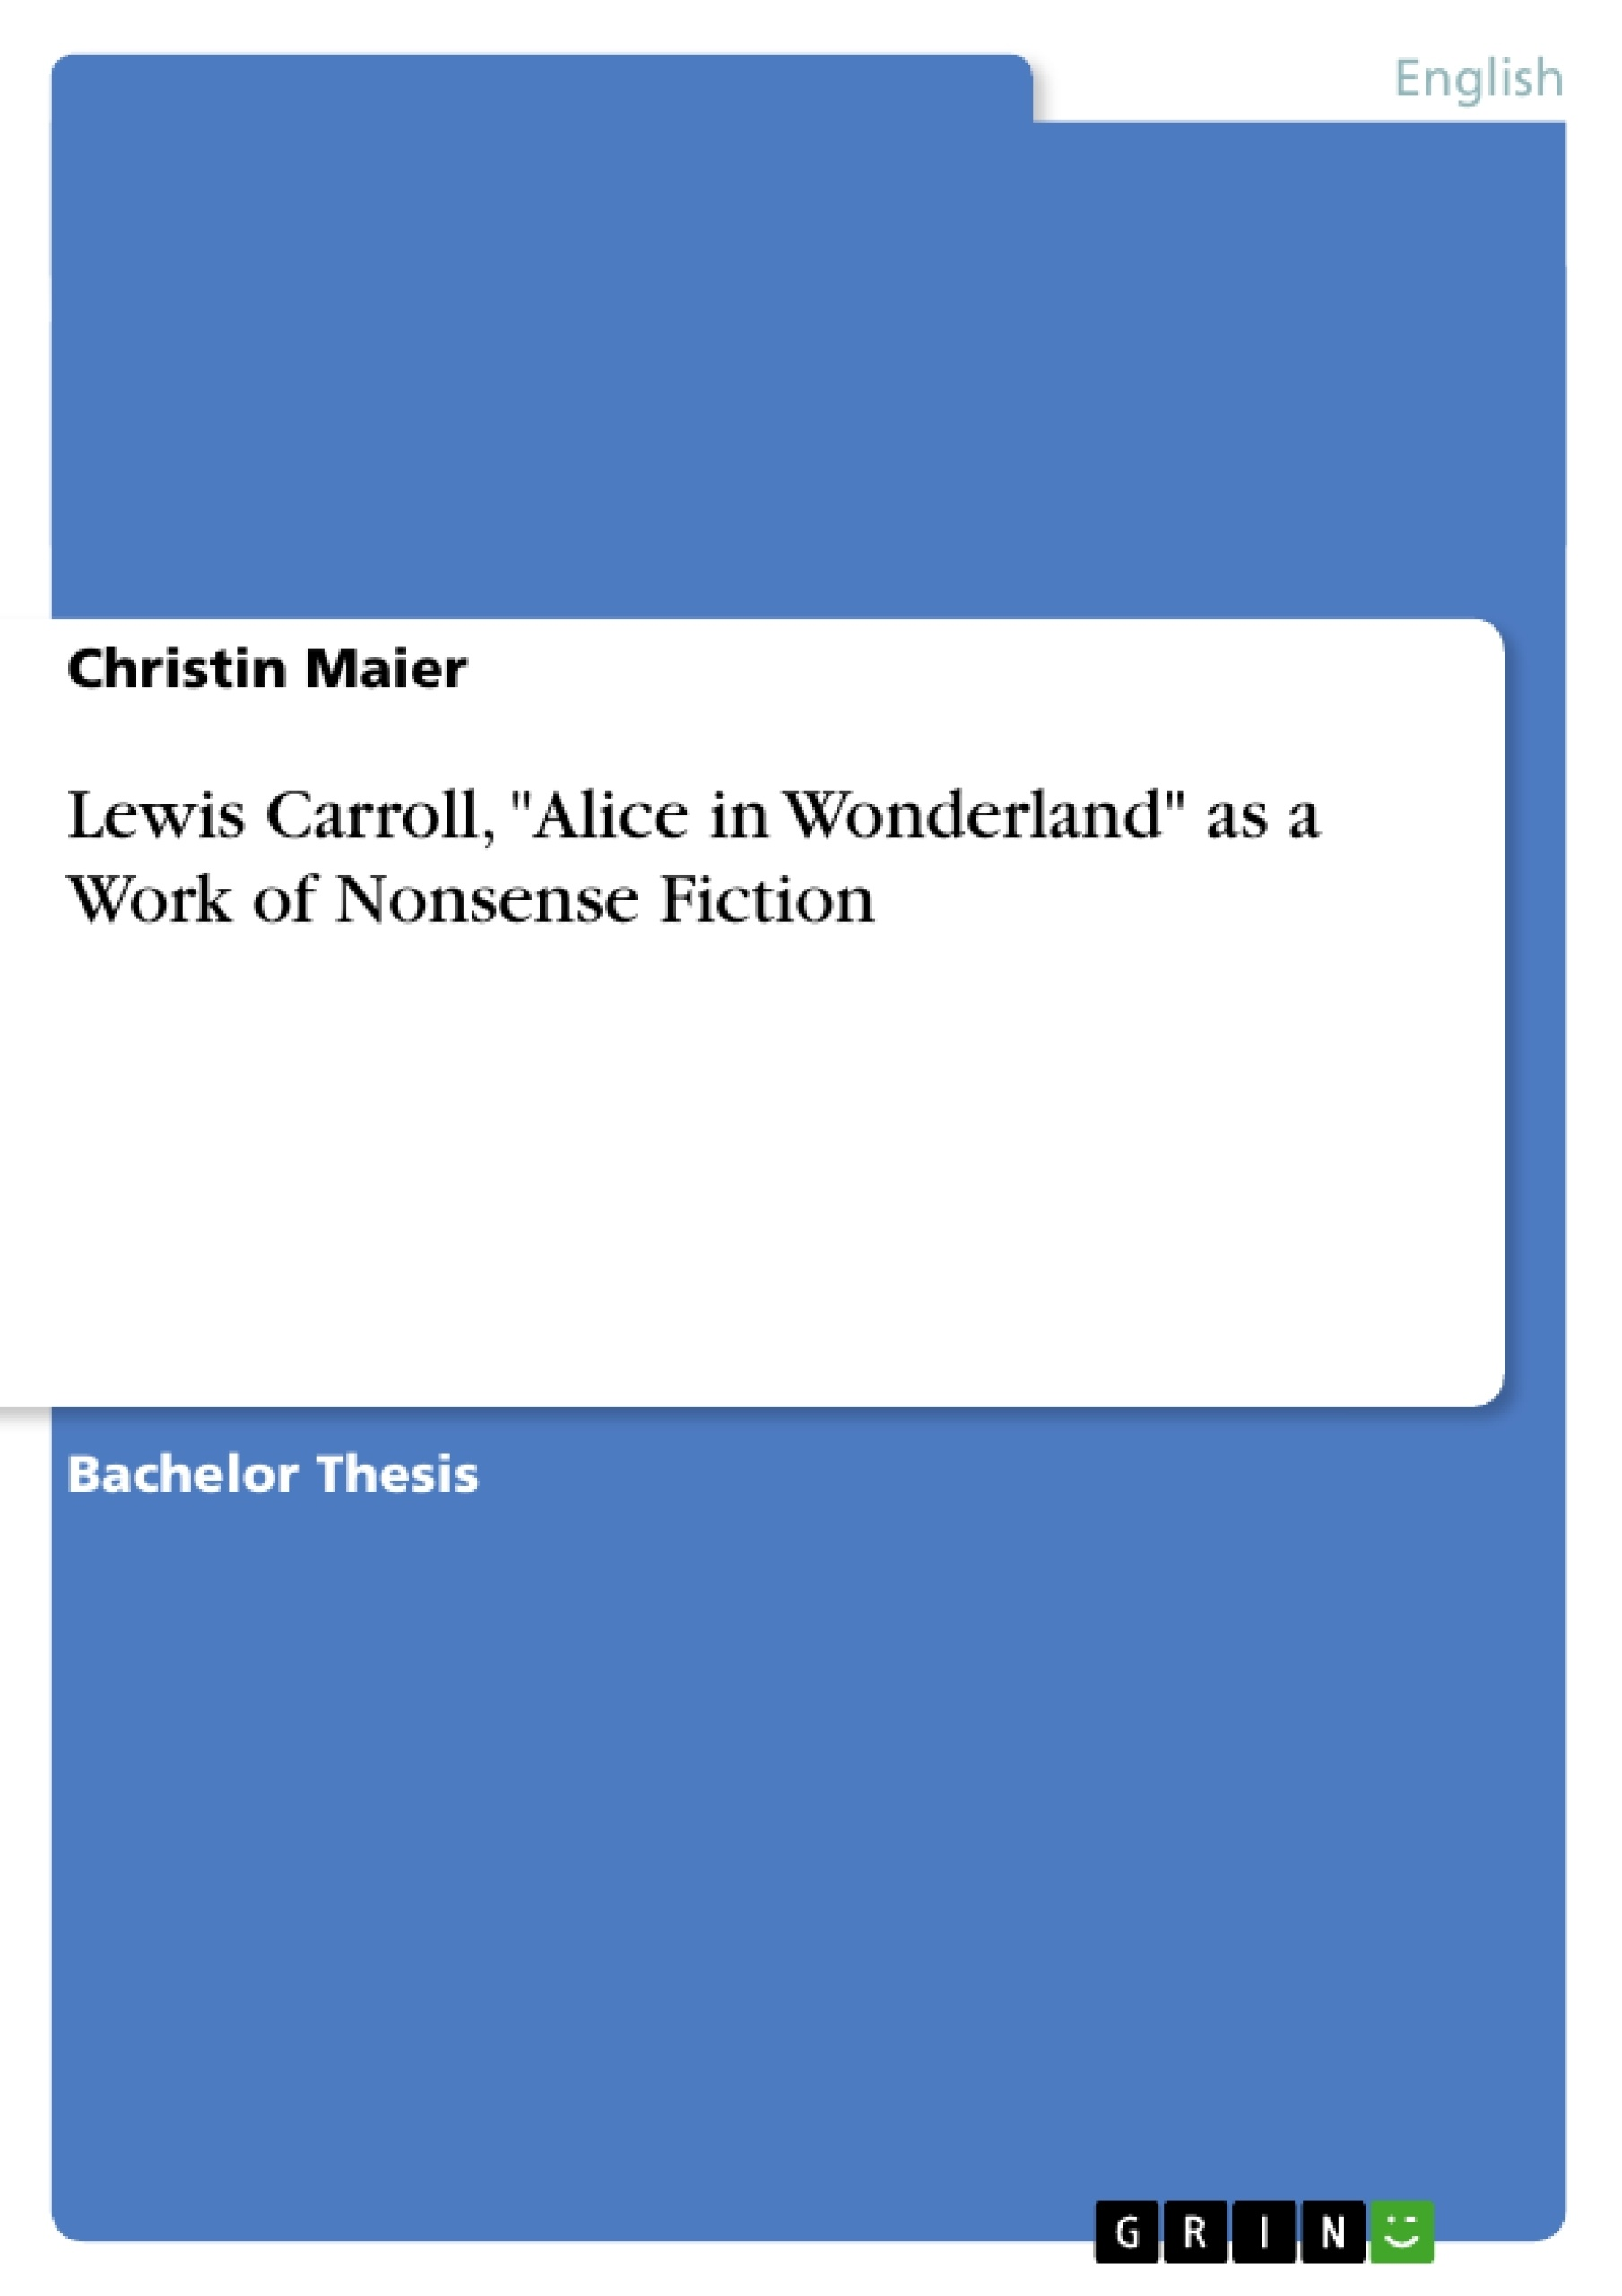 lewis carroll alice in wonderland as a work of nonsense fiction  upload your own papers earn money and win an iphone x